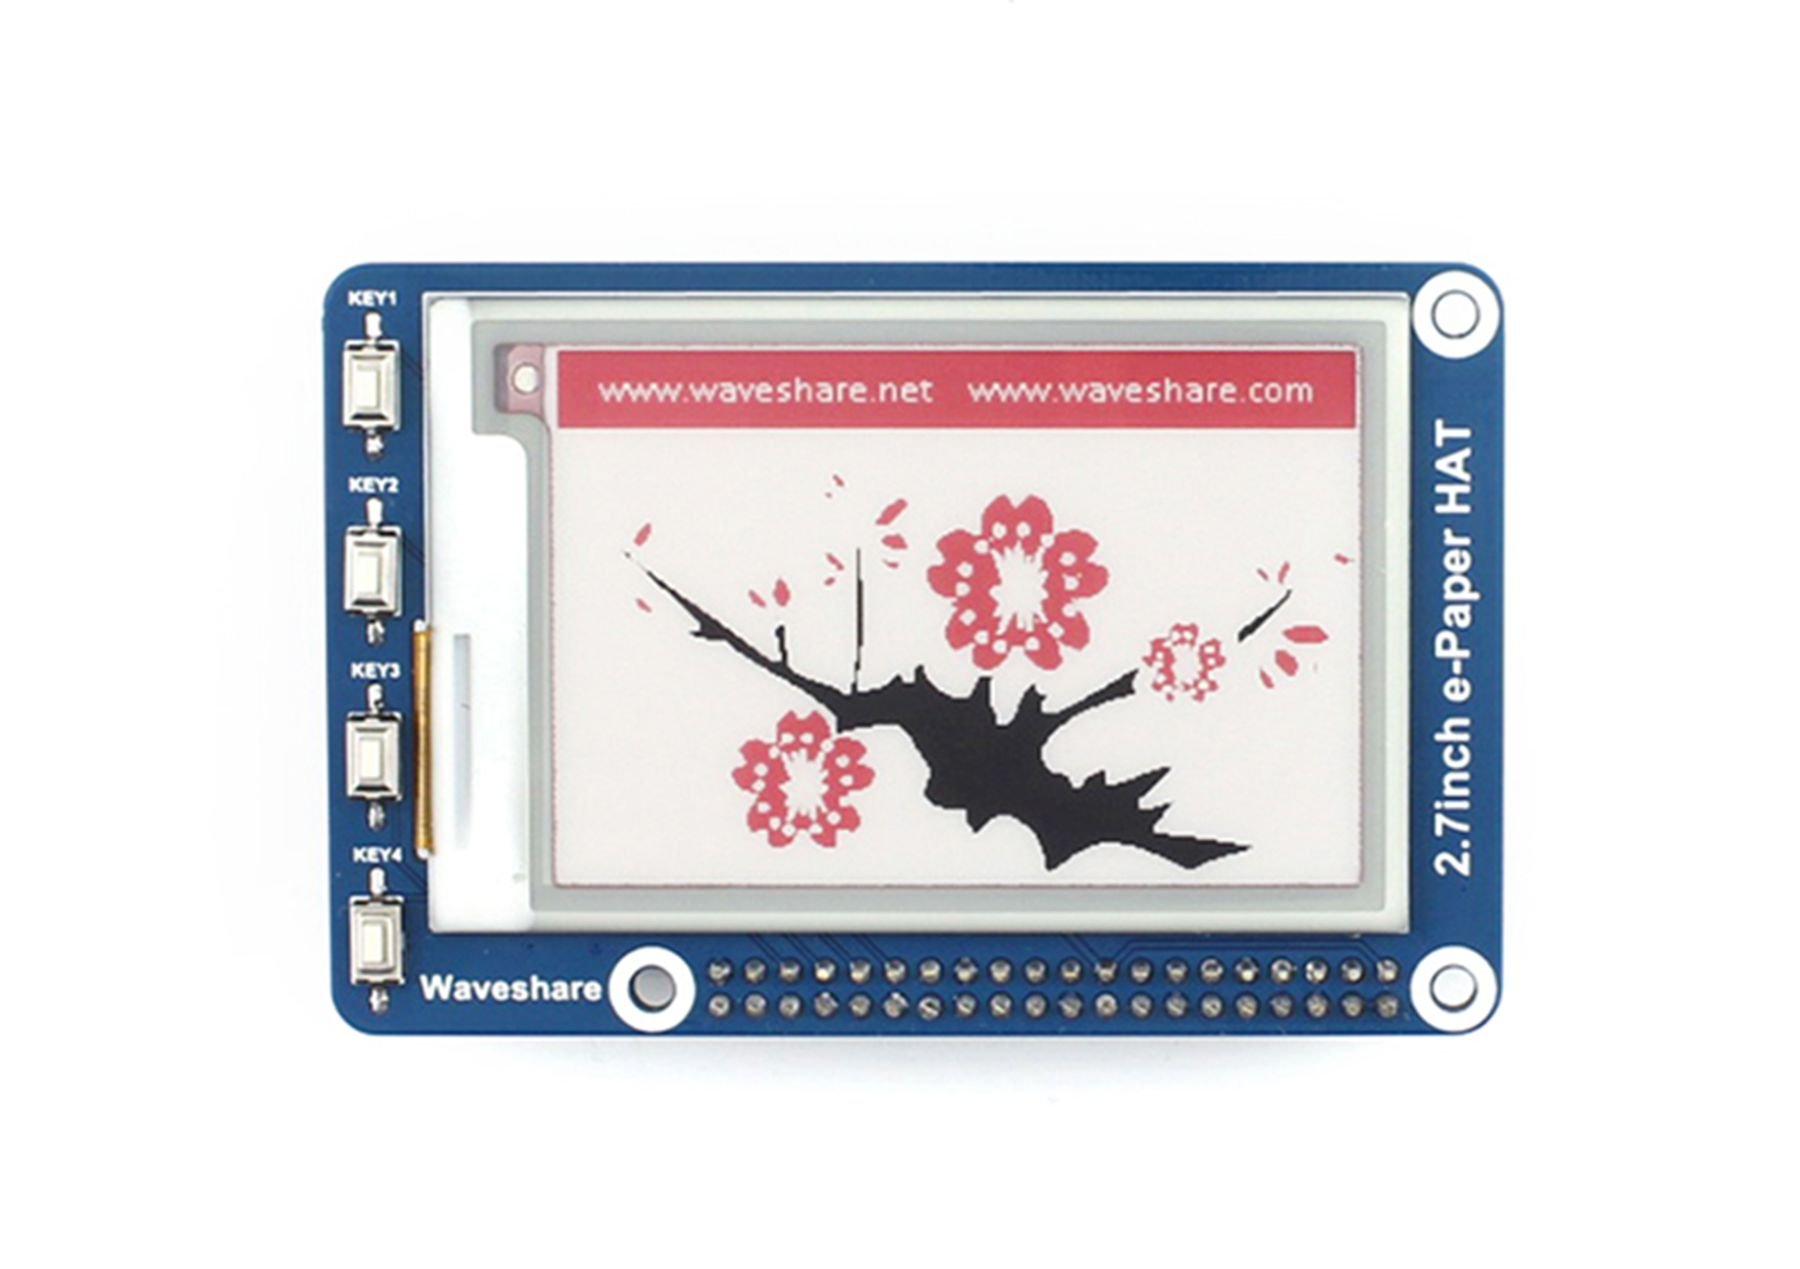 pzsmocn 264 176, 2.7inch E-Ink Display HAT(B) 3.3V Black,White and Red for Arduino/STM32/Nucleo/Raspberry Pi 2B/3B/Zero/Zero W, with Interface of 3-Wire SPI¡4-Wire SPI